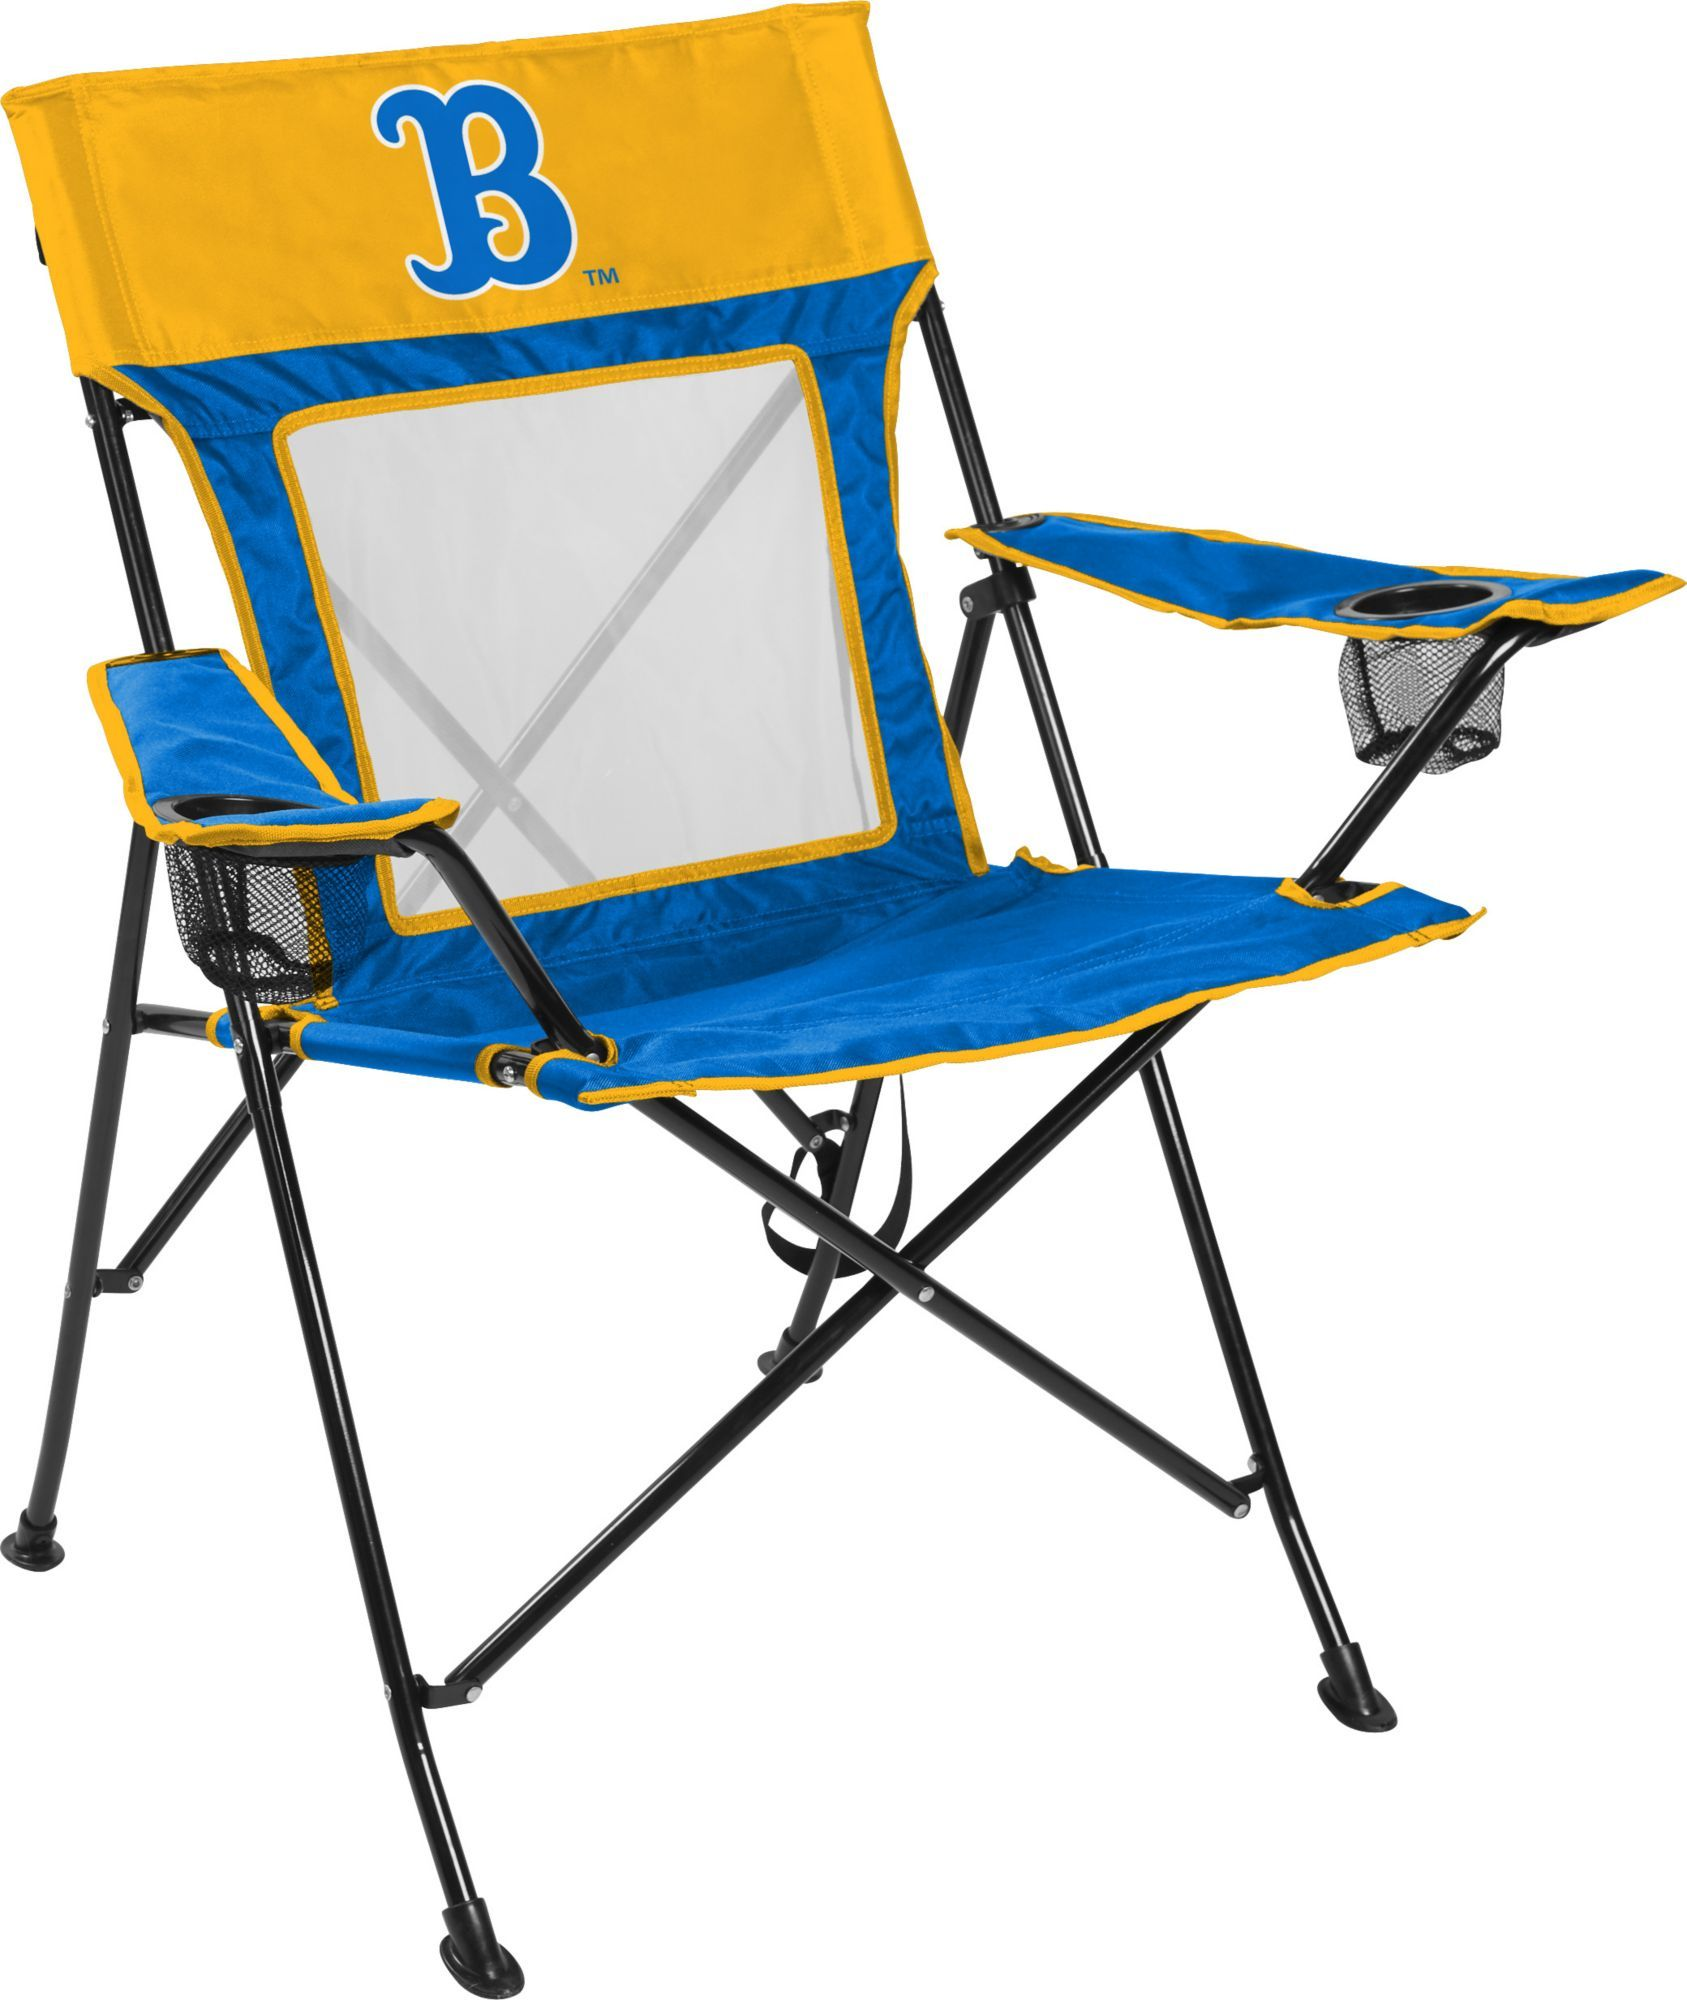 Rawlings Ucla Bruins Game Changer Chair Tailgate Chairs